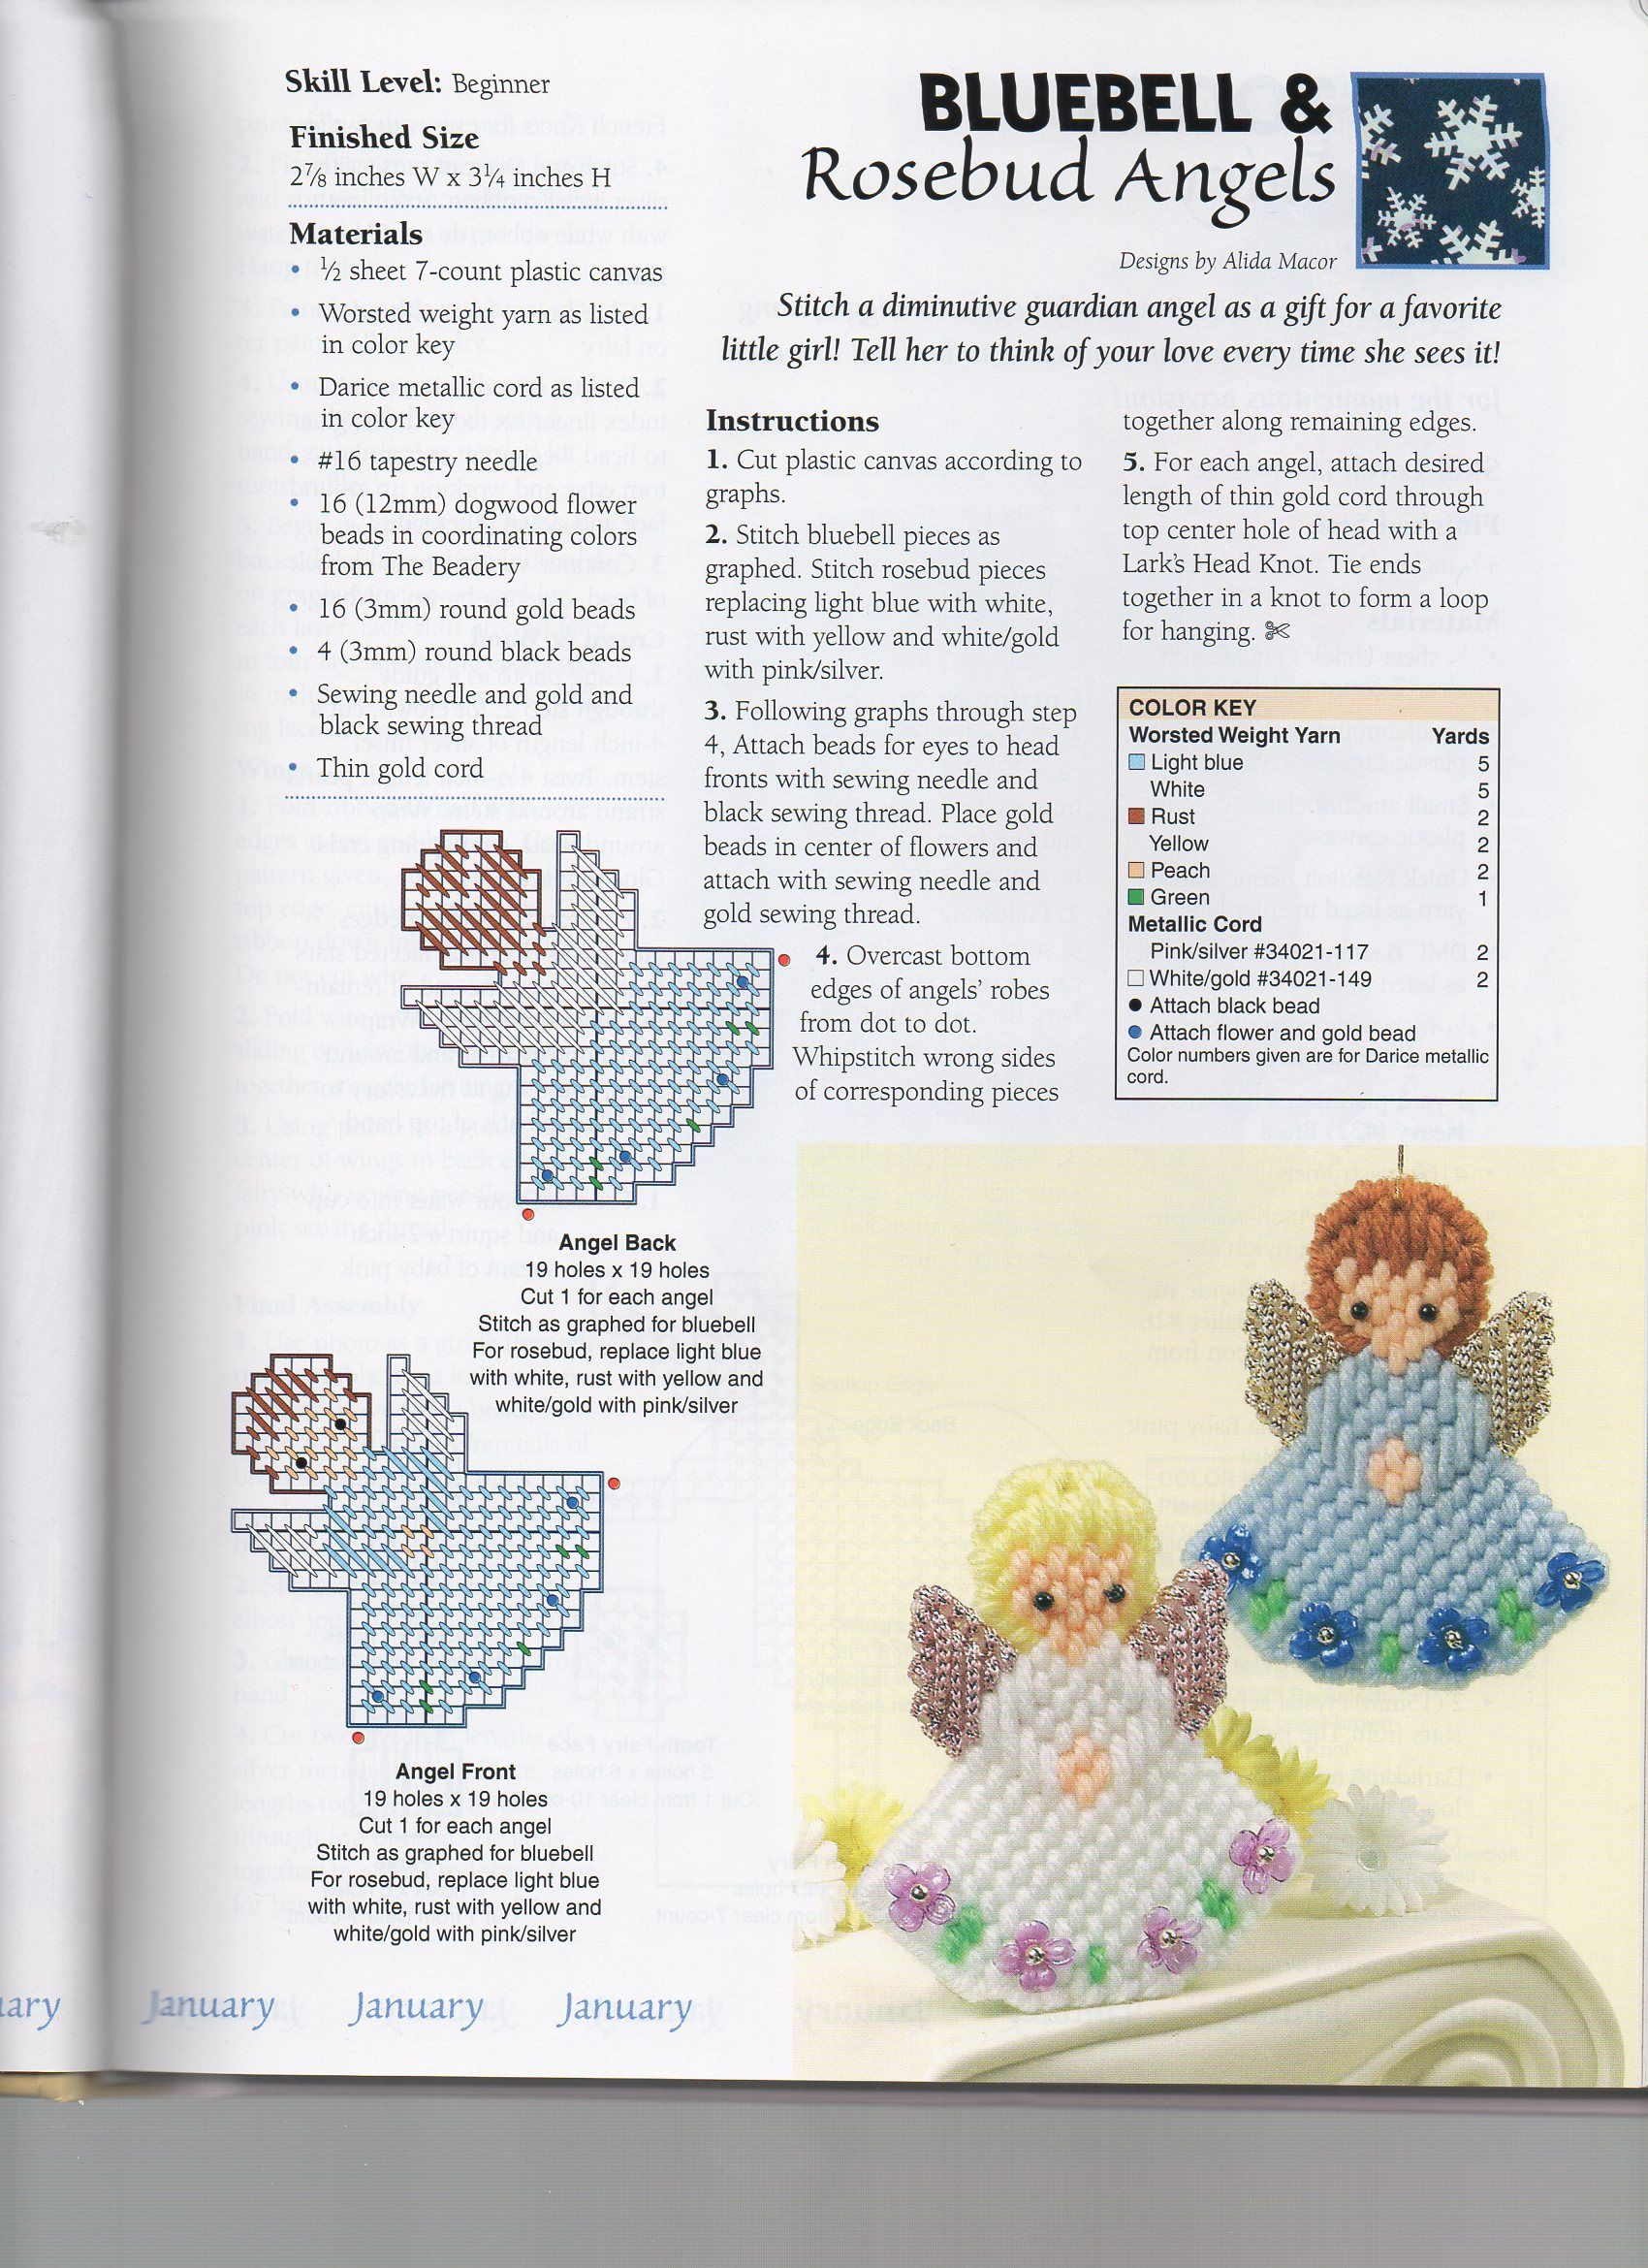 Bluebell And Rosebud Angels | Plastic Canvas | Pinterest | Plastic - Free Printable Plastic Canvas Patterns Bookmarks